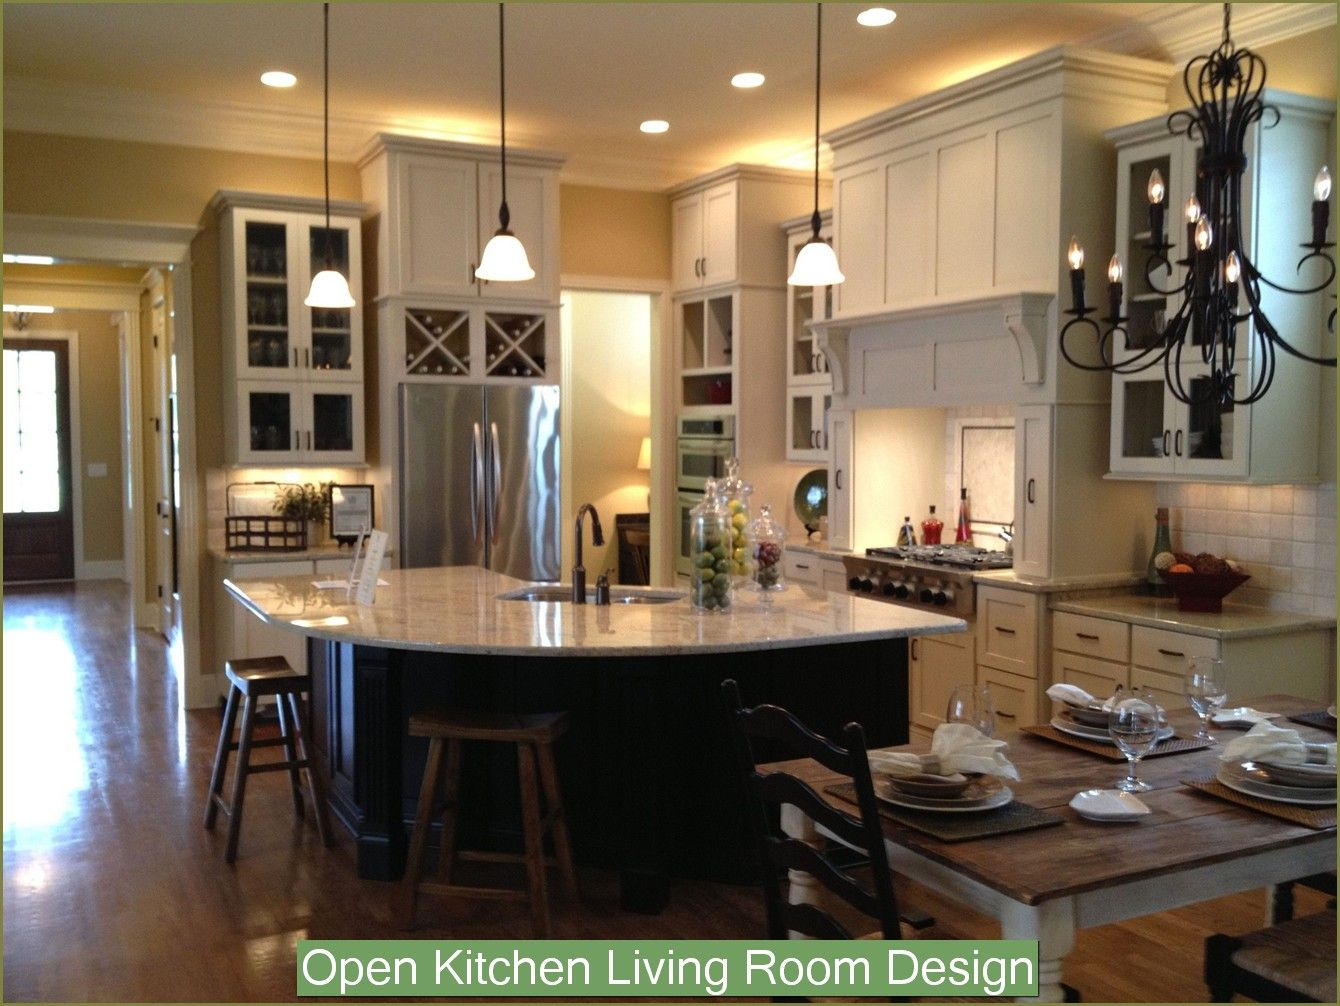 11 Kitchen Living Room Open Concept Design Ideas In 2020